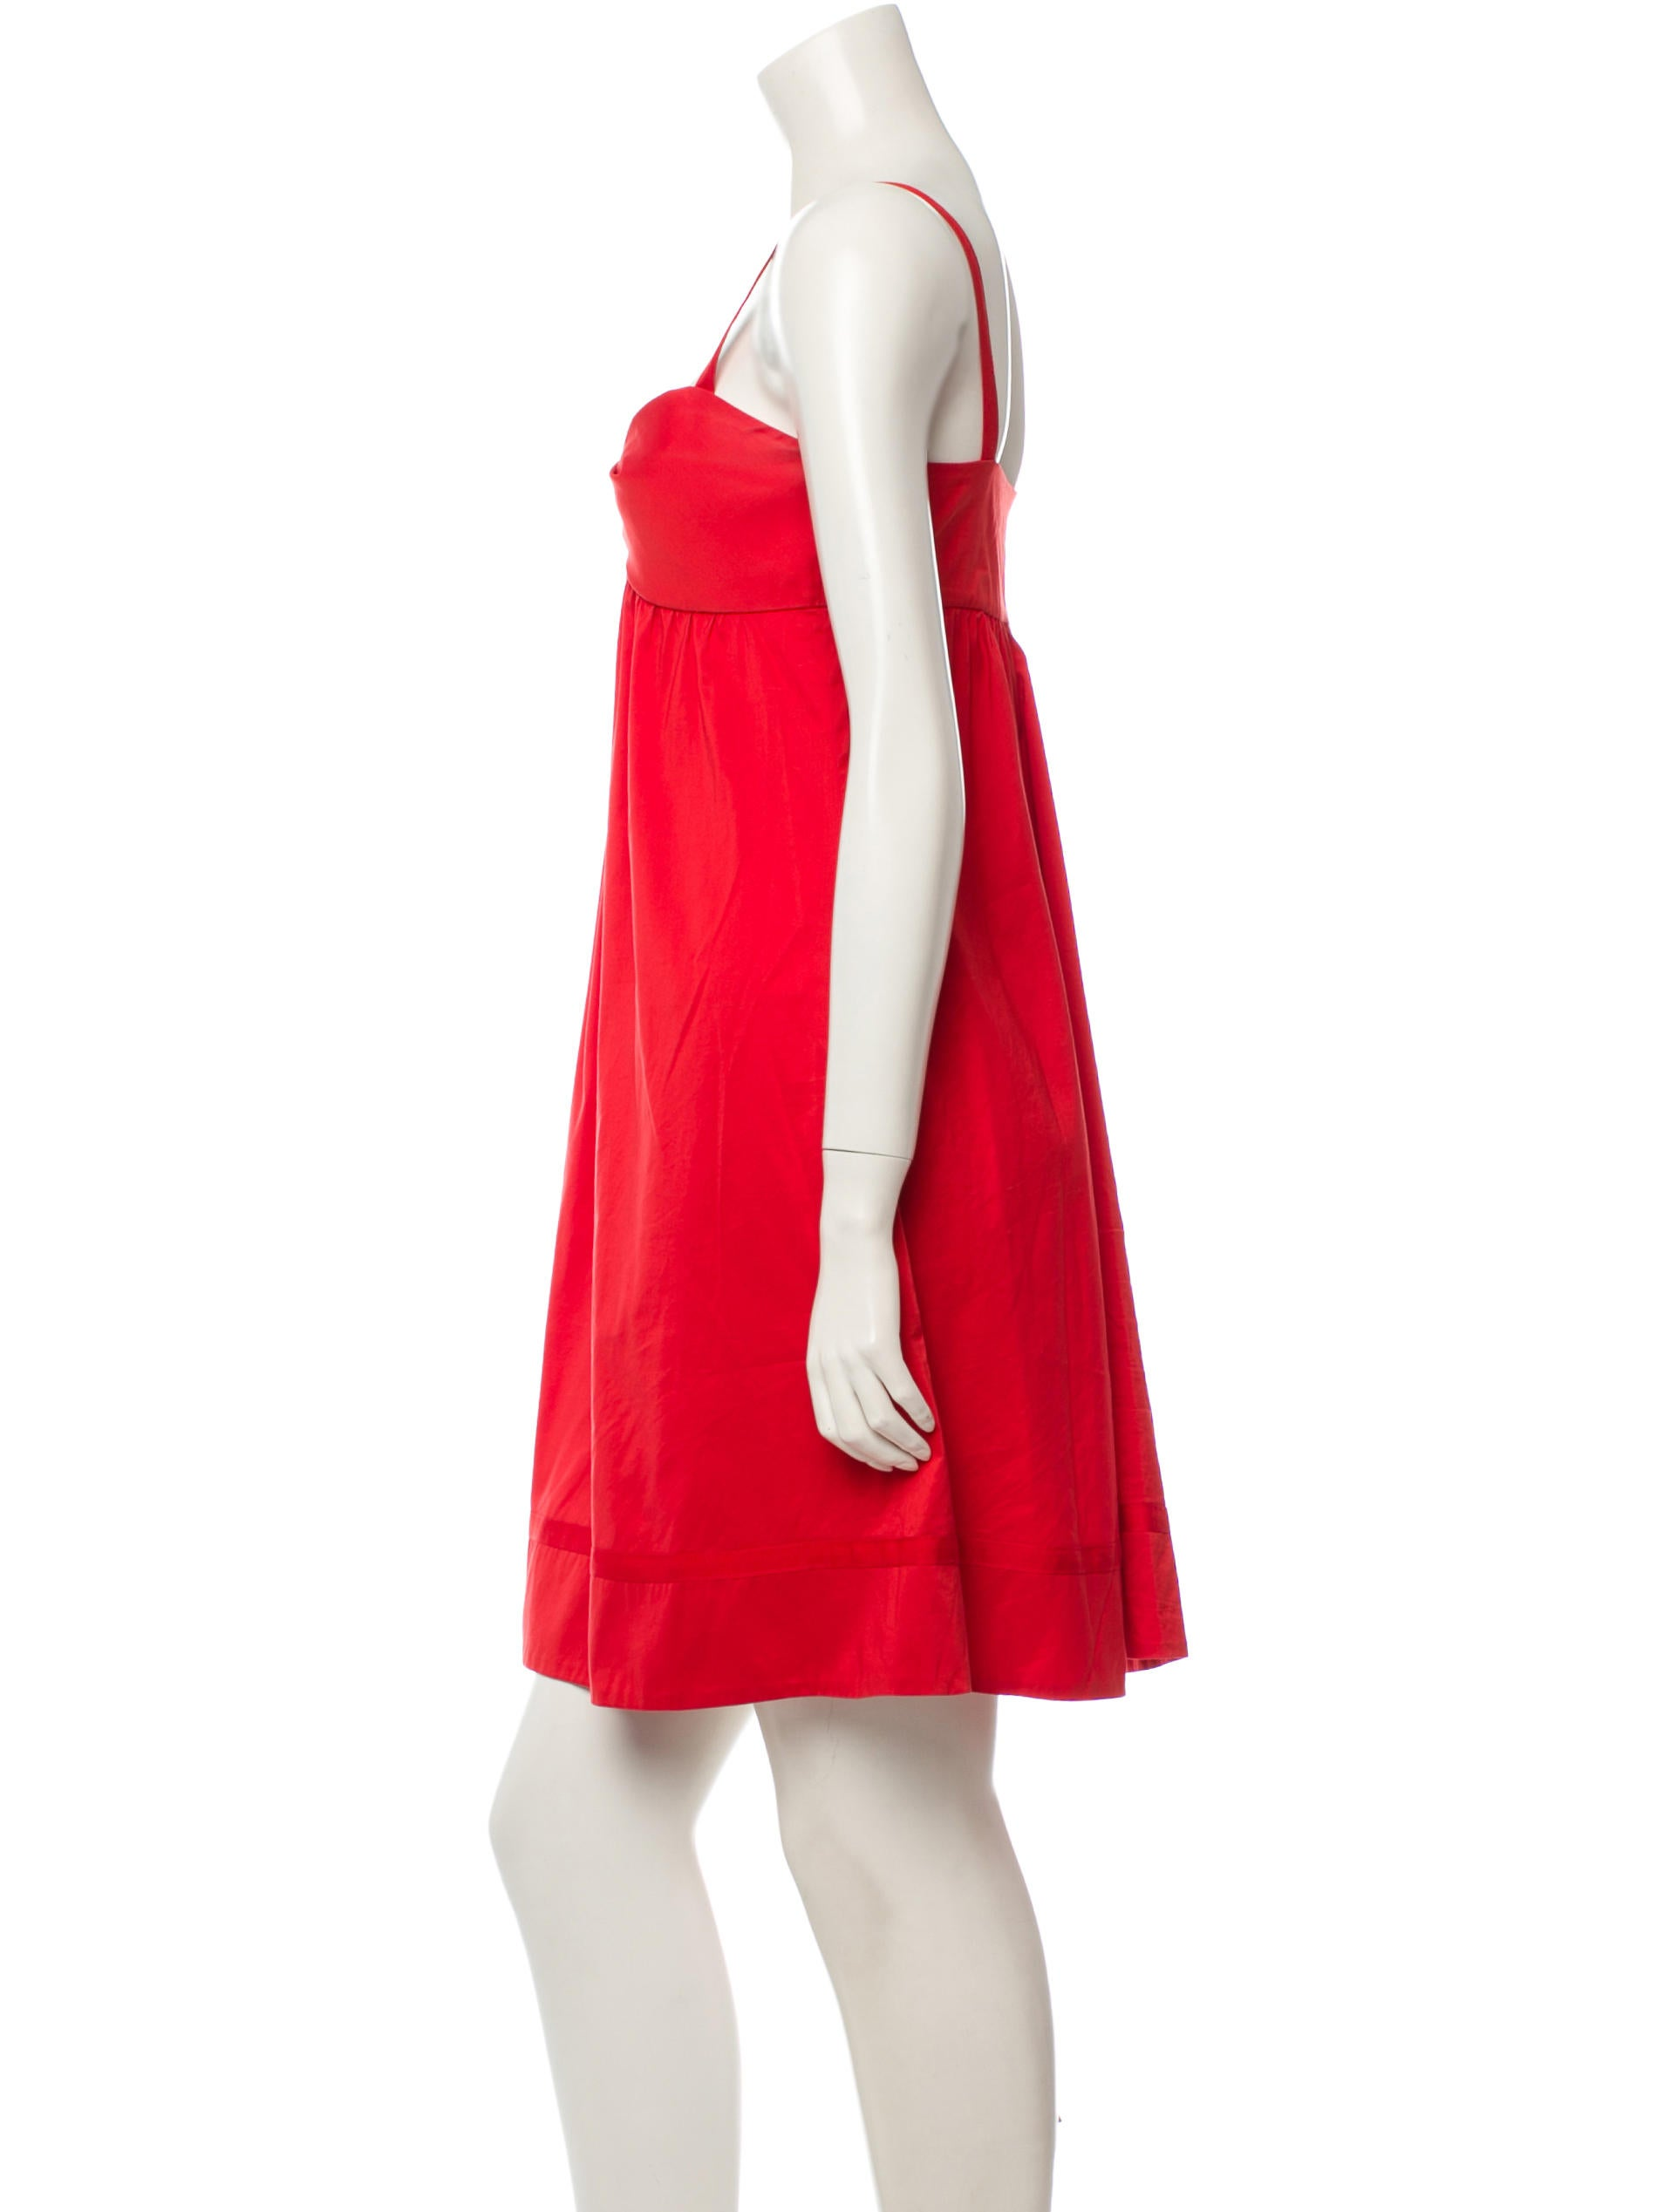 Diane von furstenberg dress clothing wdi42086 the for Diane von furstenberg clothes